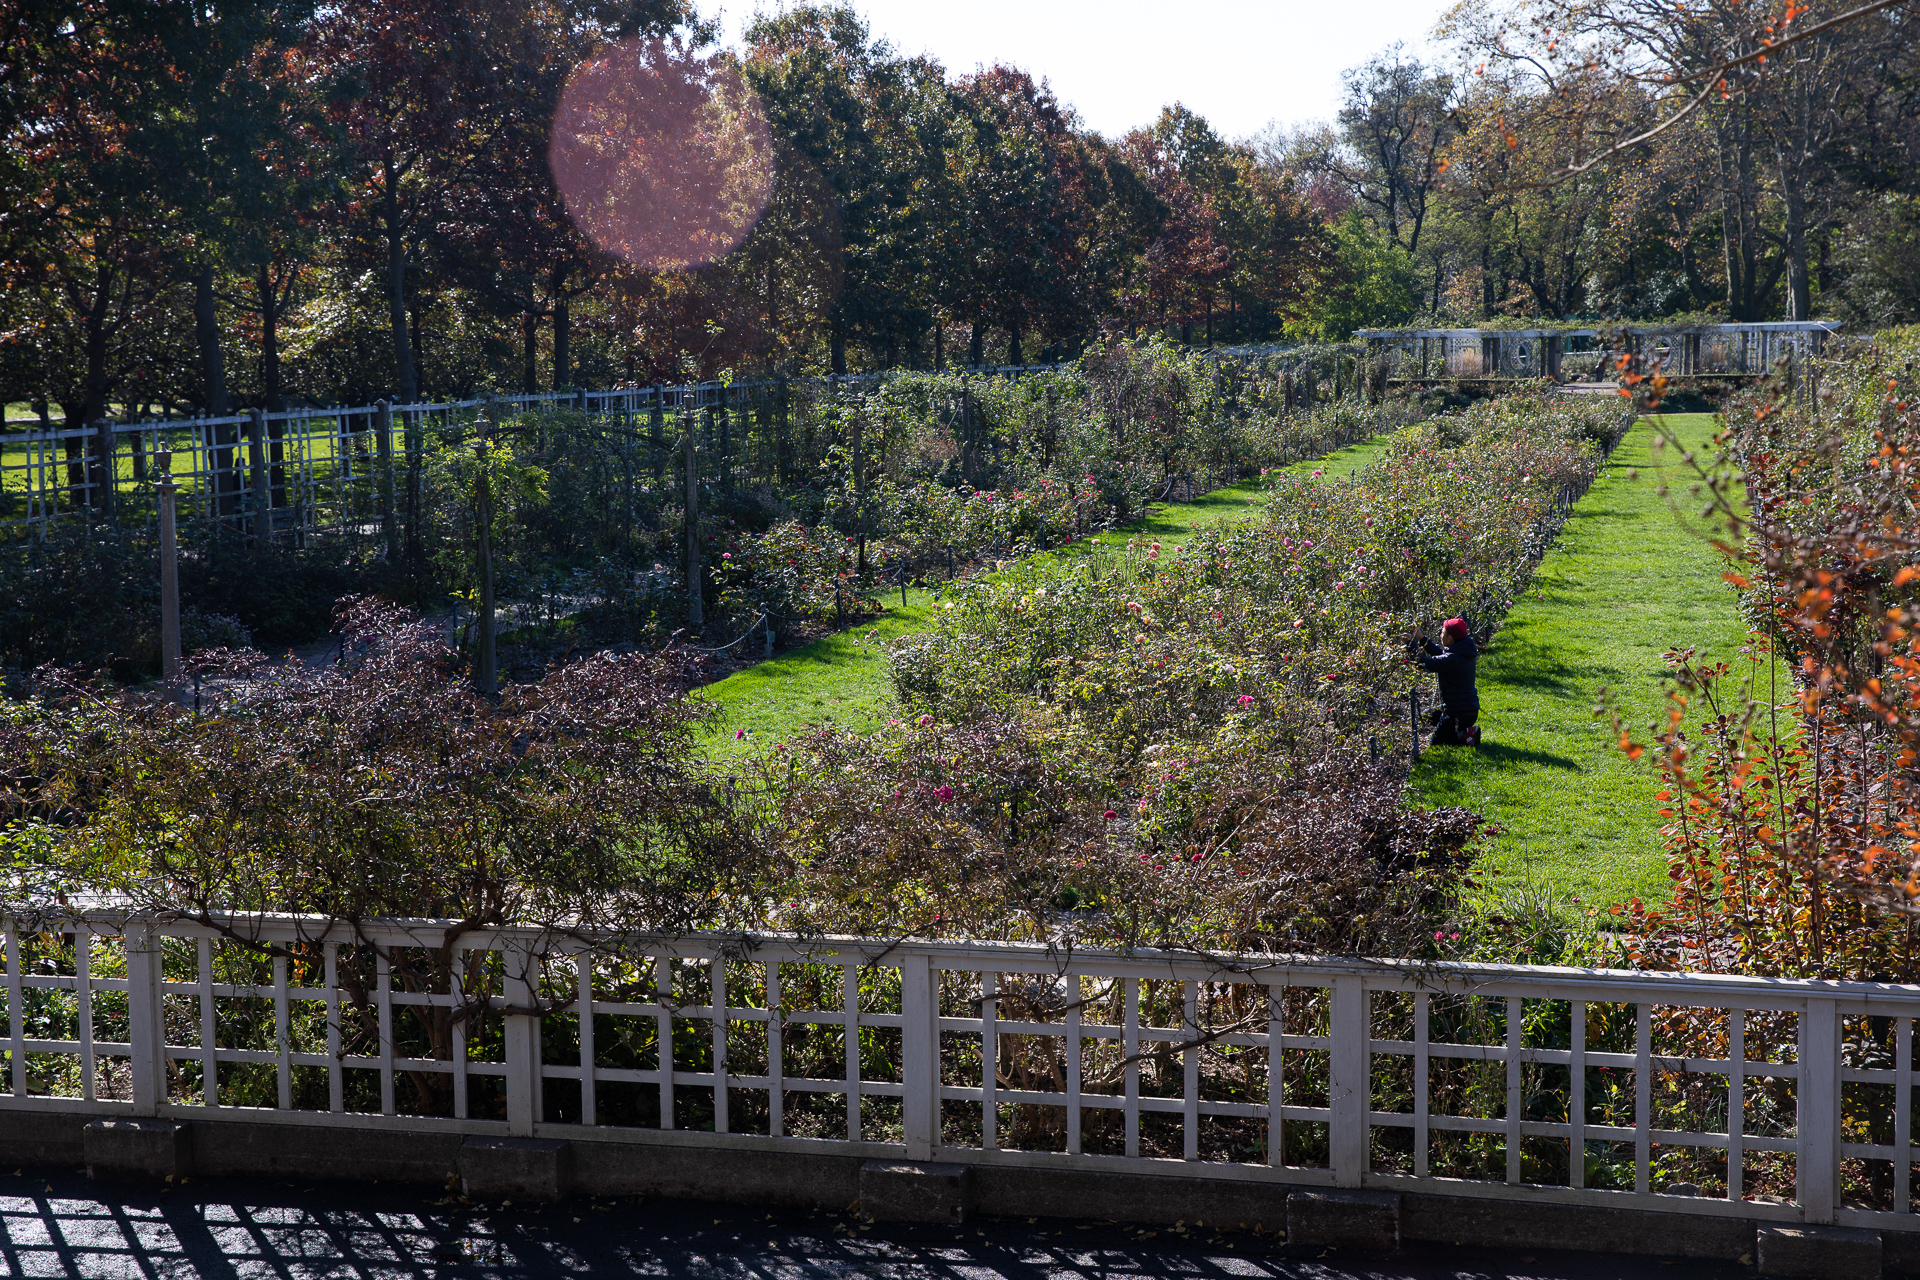 A switchback on the Robert W. Wilson Overlook's pathway has an excellent view of the Cranford Rose Garden. Eagle photo by Paul Frangipane